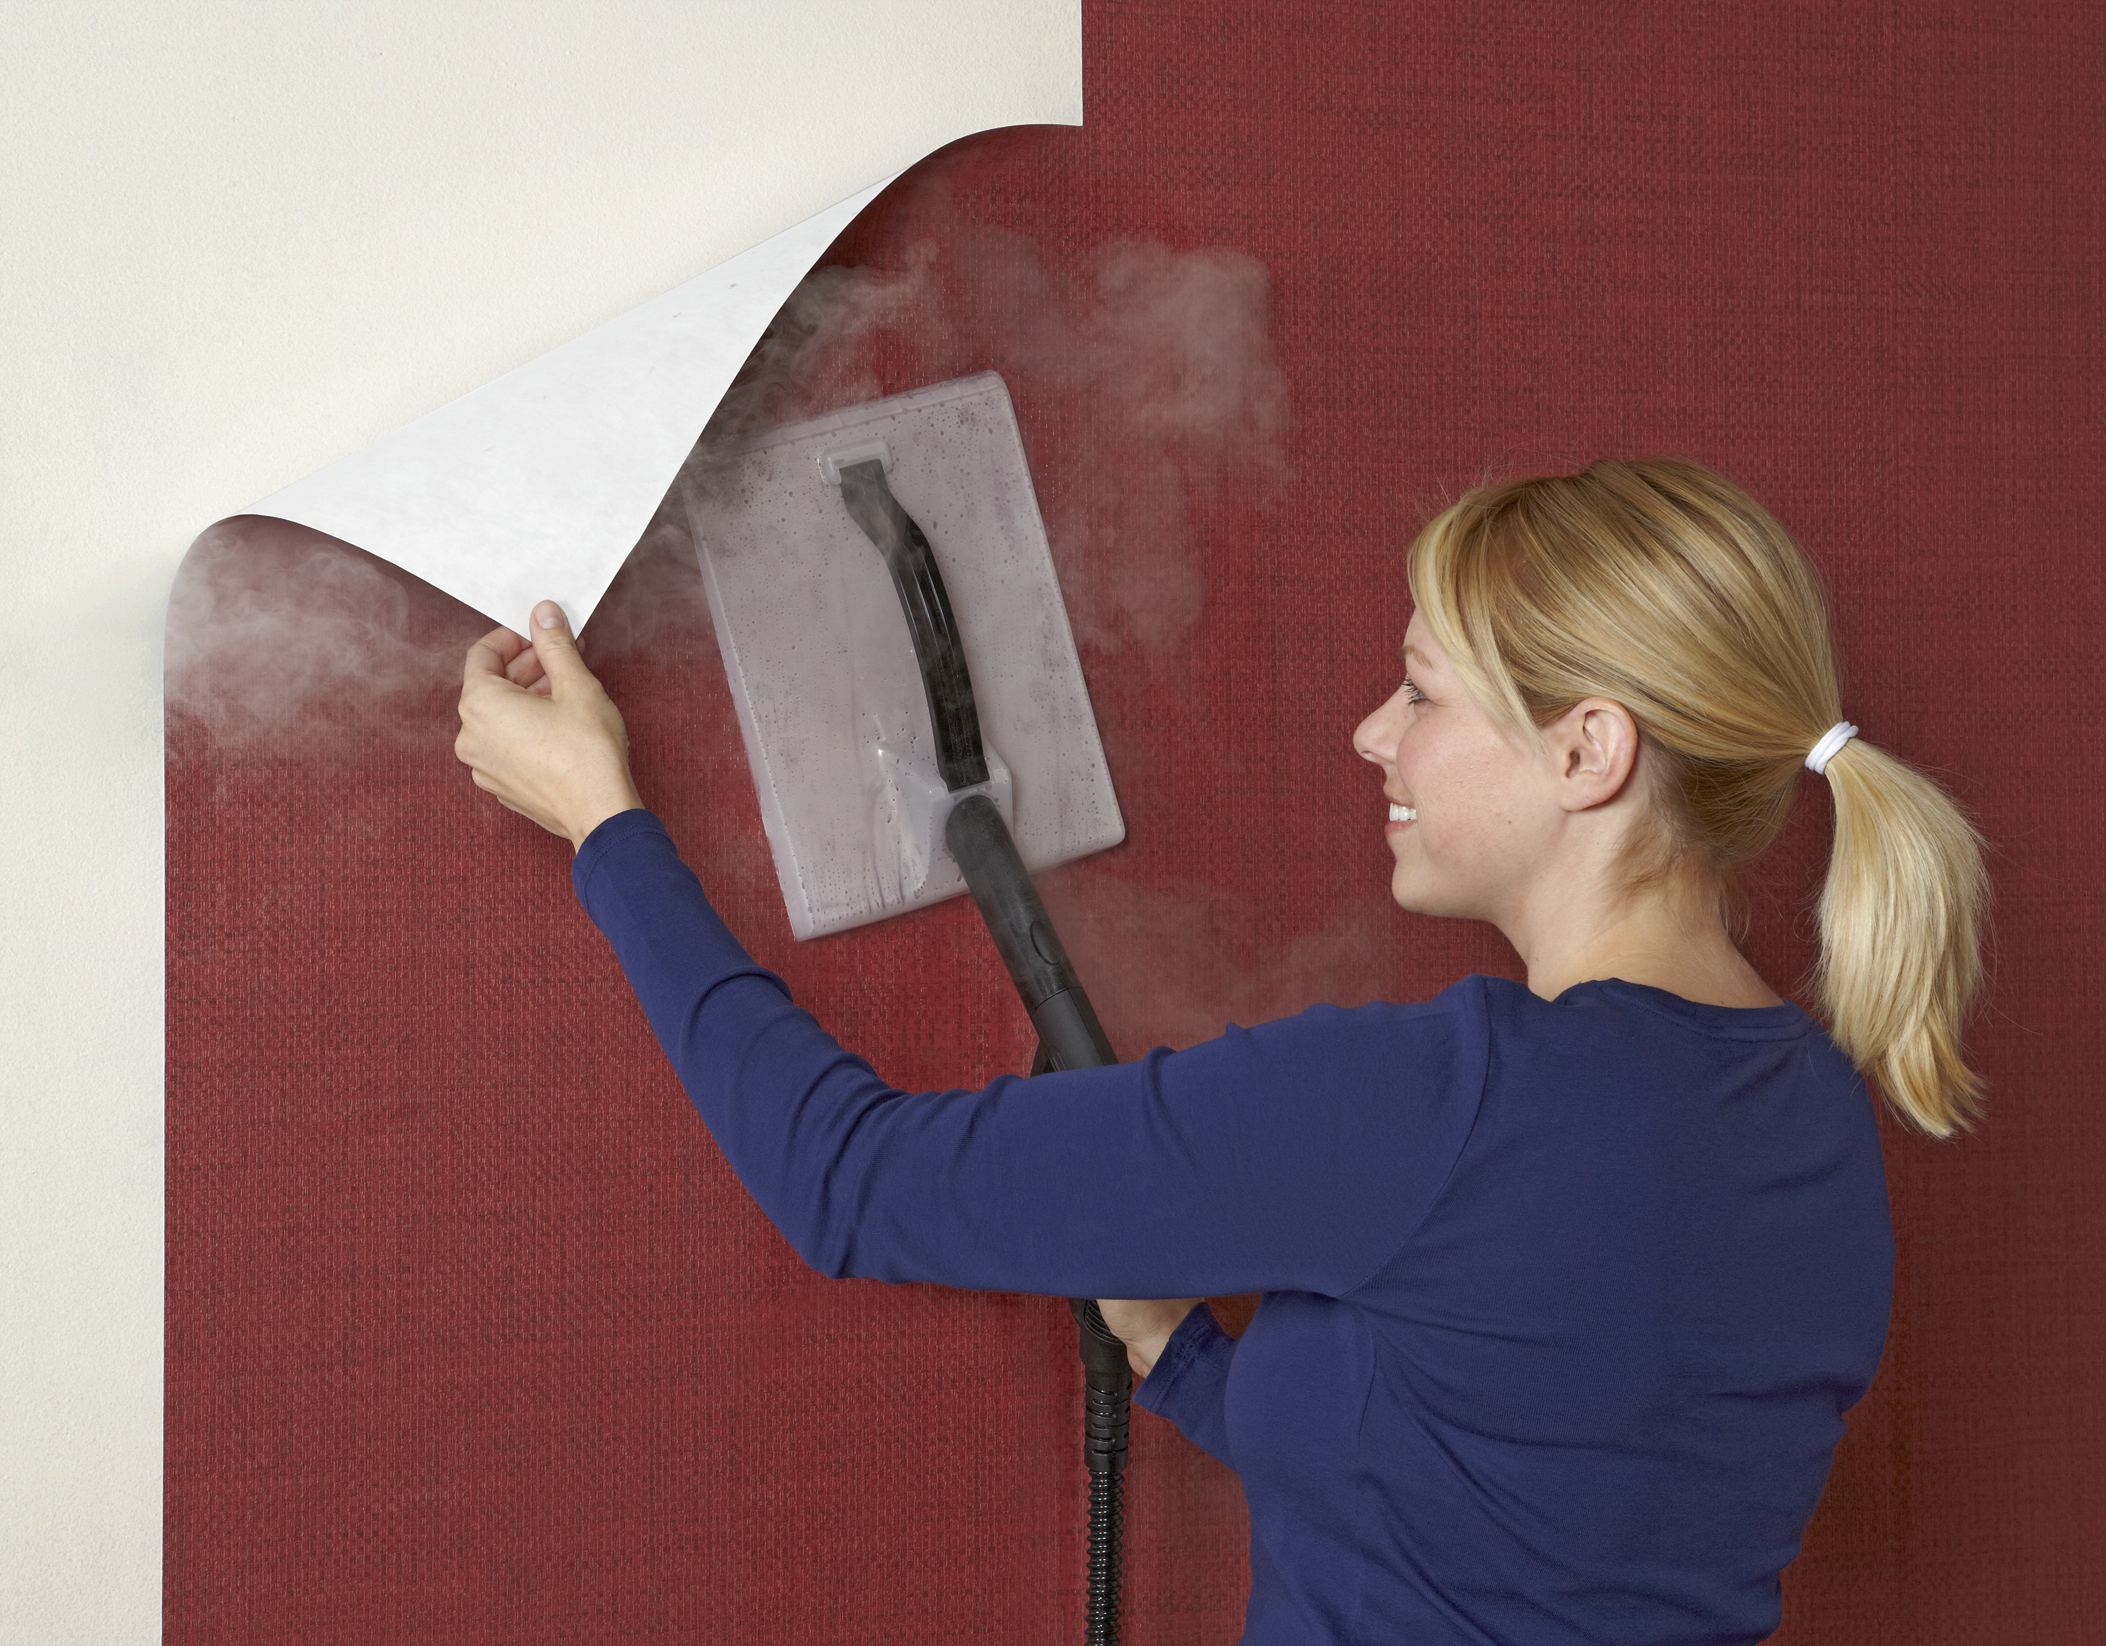 Wallpaper removal with wallpaper steamer 2106x1646